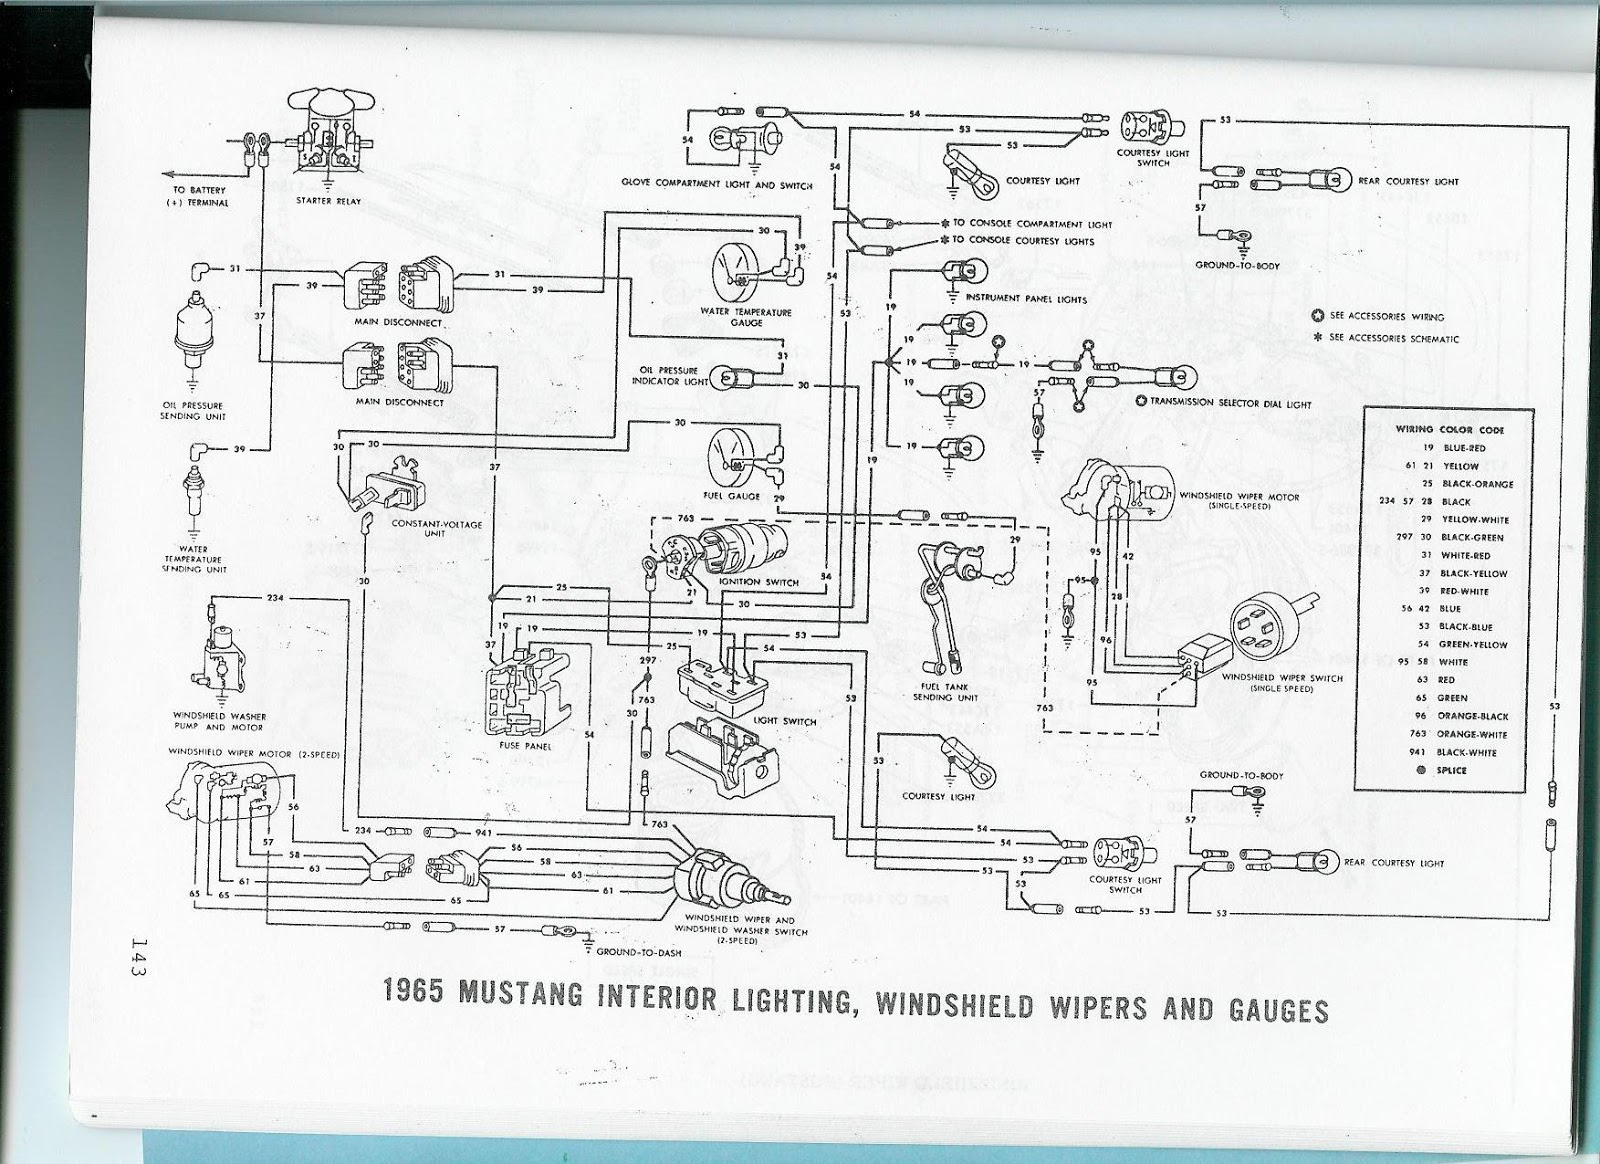 1966 ford mustang v8 wiring diagram wiring diagram portal u2022 rh graphiko co 1966 Mustang Fuse Box Diagram 1966 Mustang Fuse Box Diagram